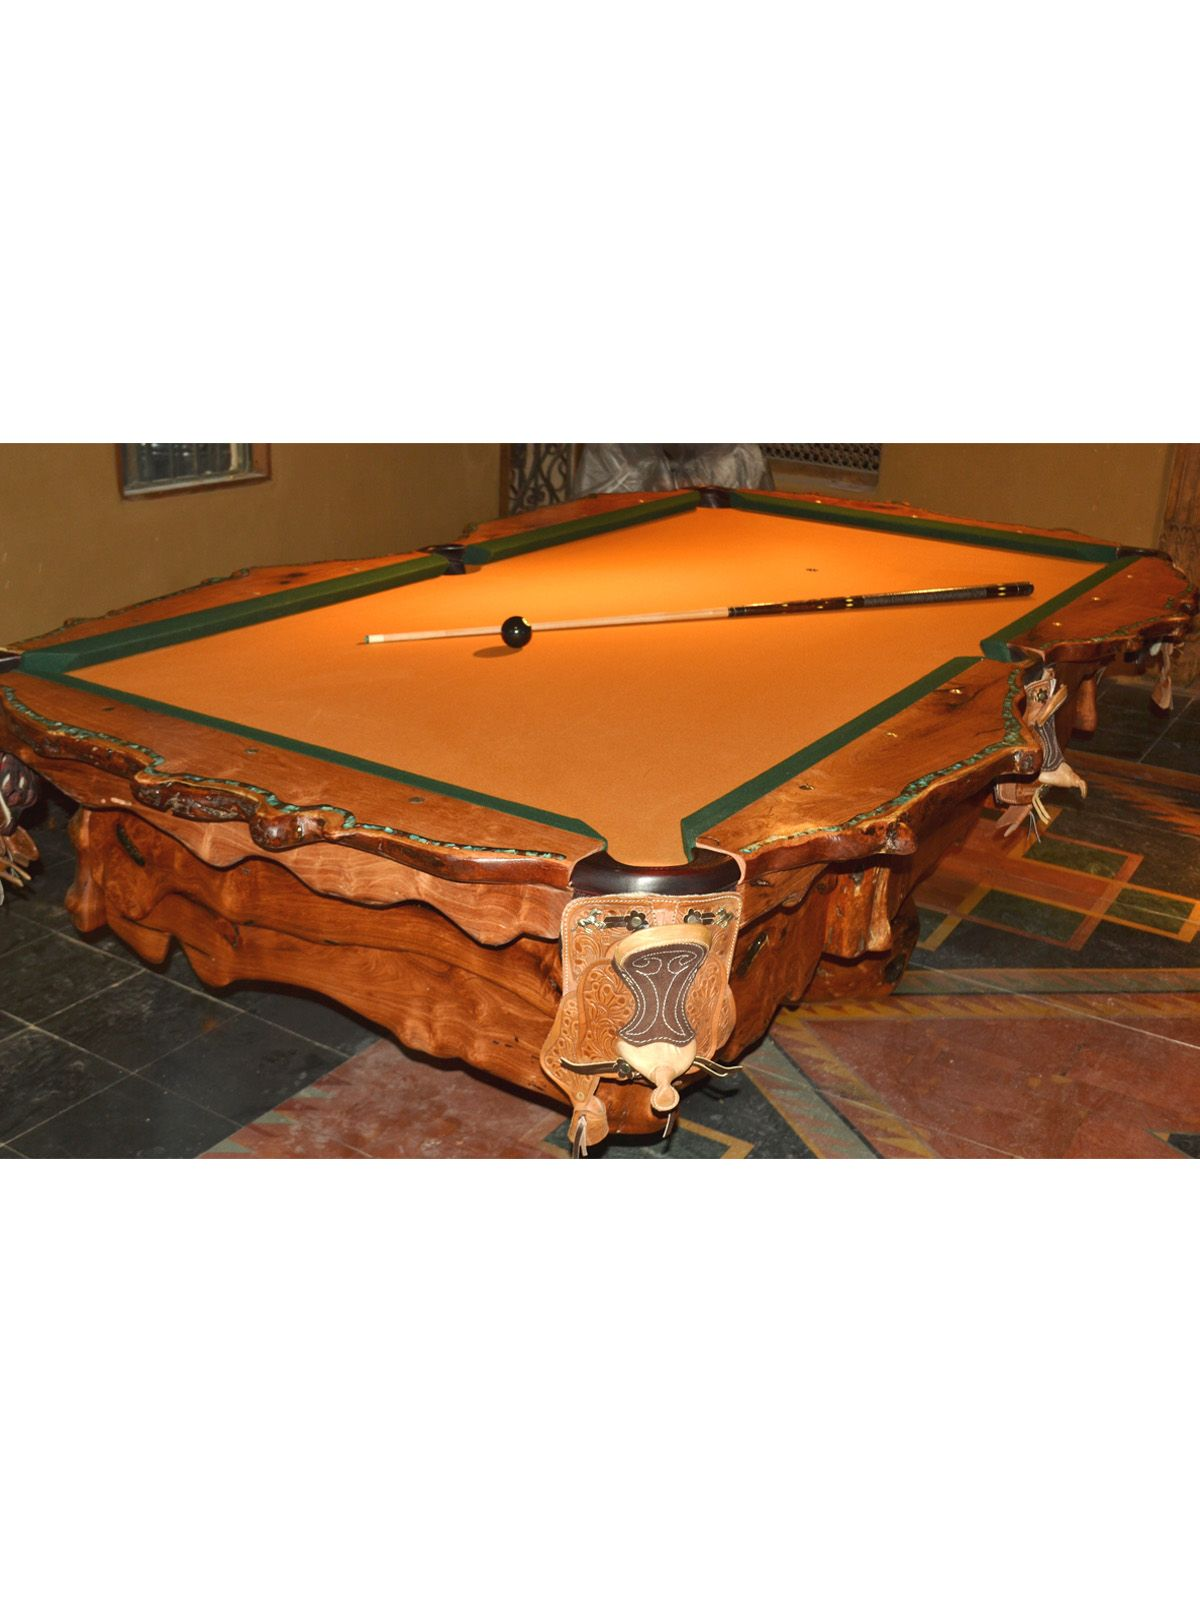 One Of A Kind Mesquite Pool Table With Inlaid Turquoise